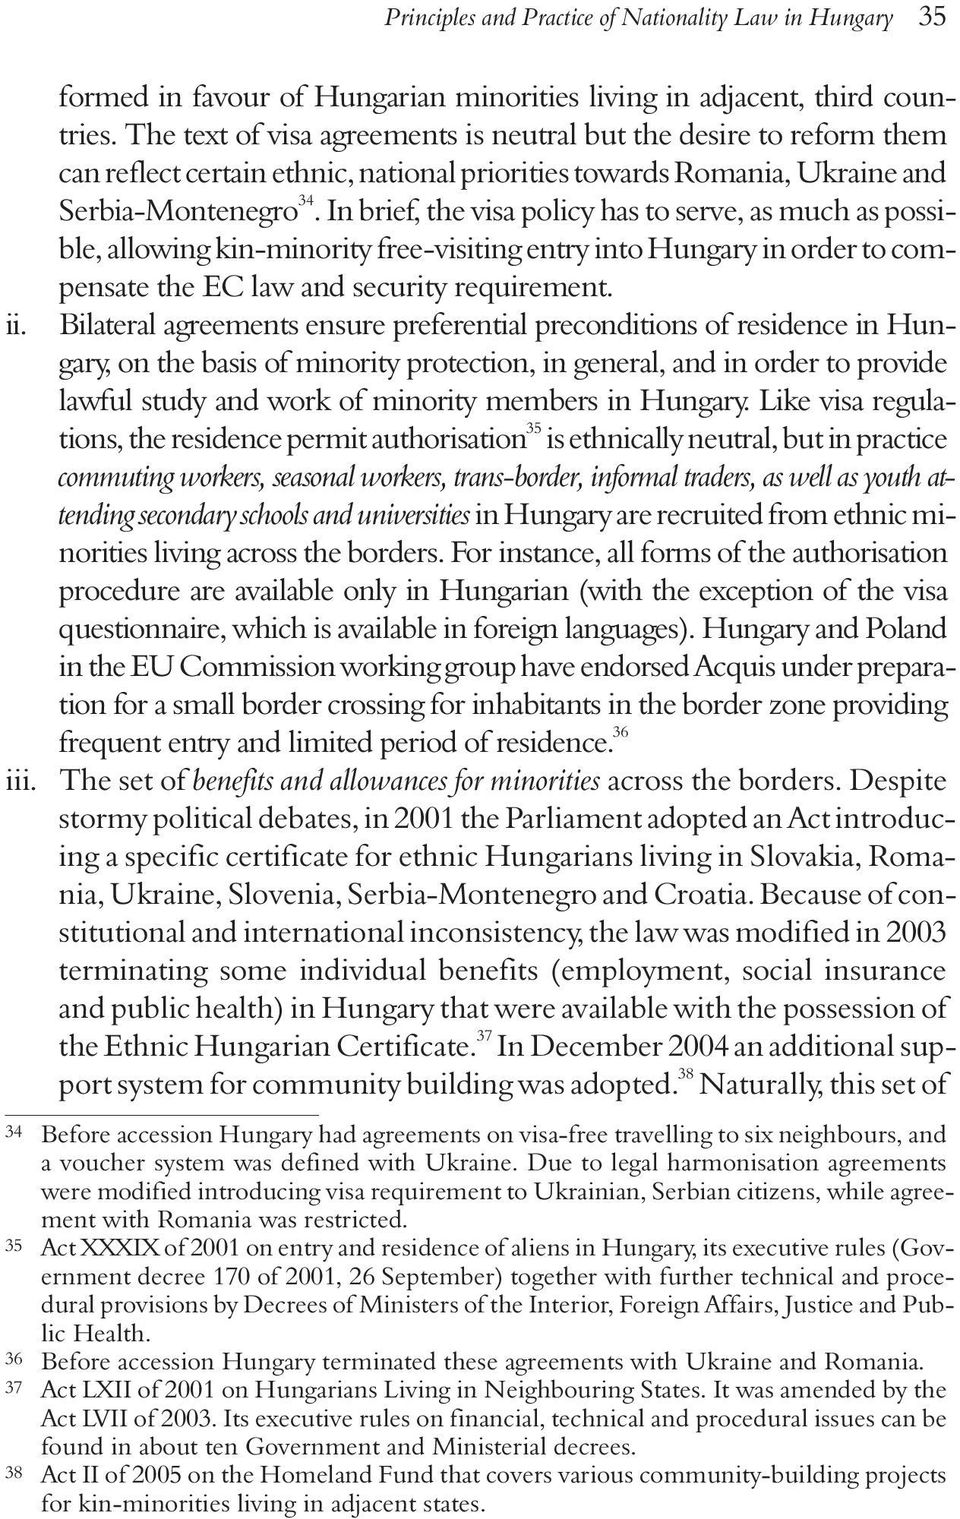 In brief, the visa policy has to serve, as much as possible, allowing kin-minority free-visiting entry into Hungary in order to compensate the EC law and security requirement. ii.